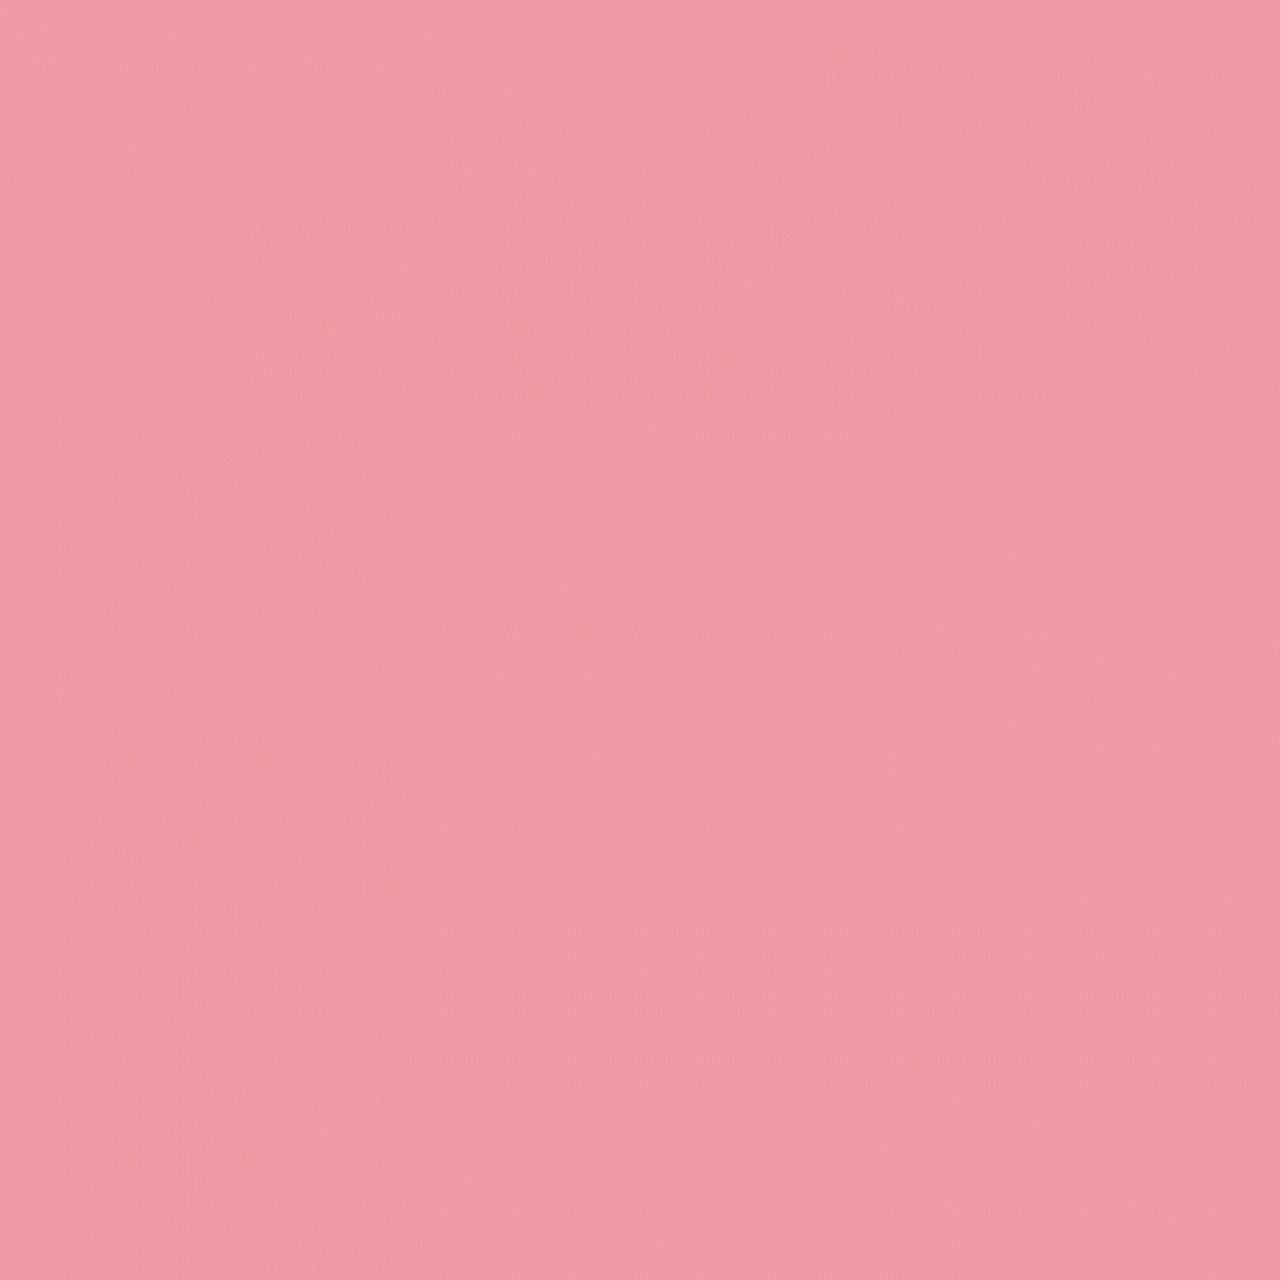 1280x1280 pink backgrounds - Burge.bjgmc-tb.org